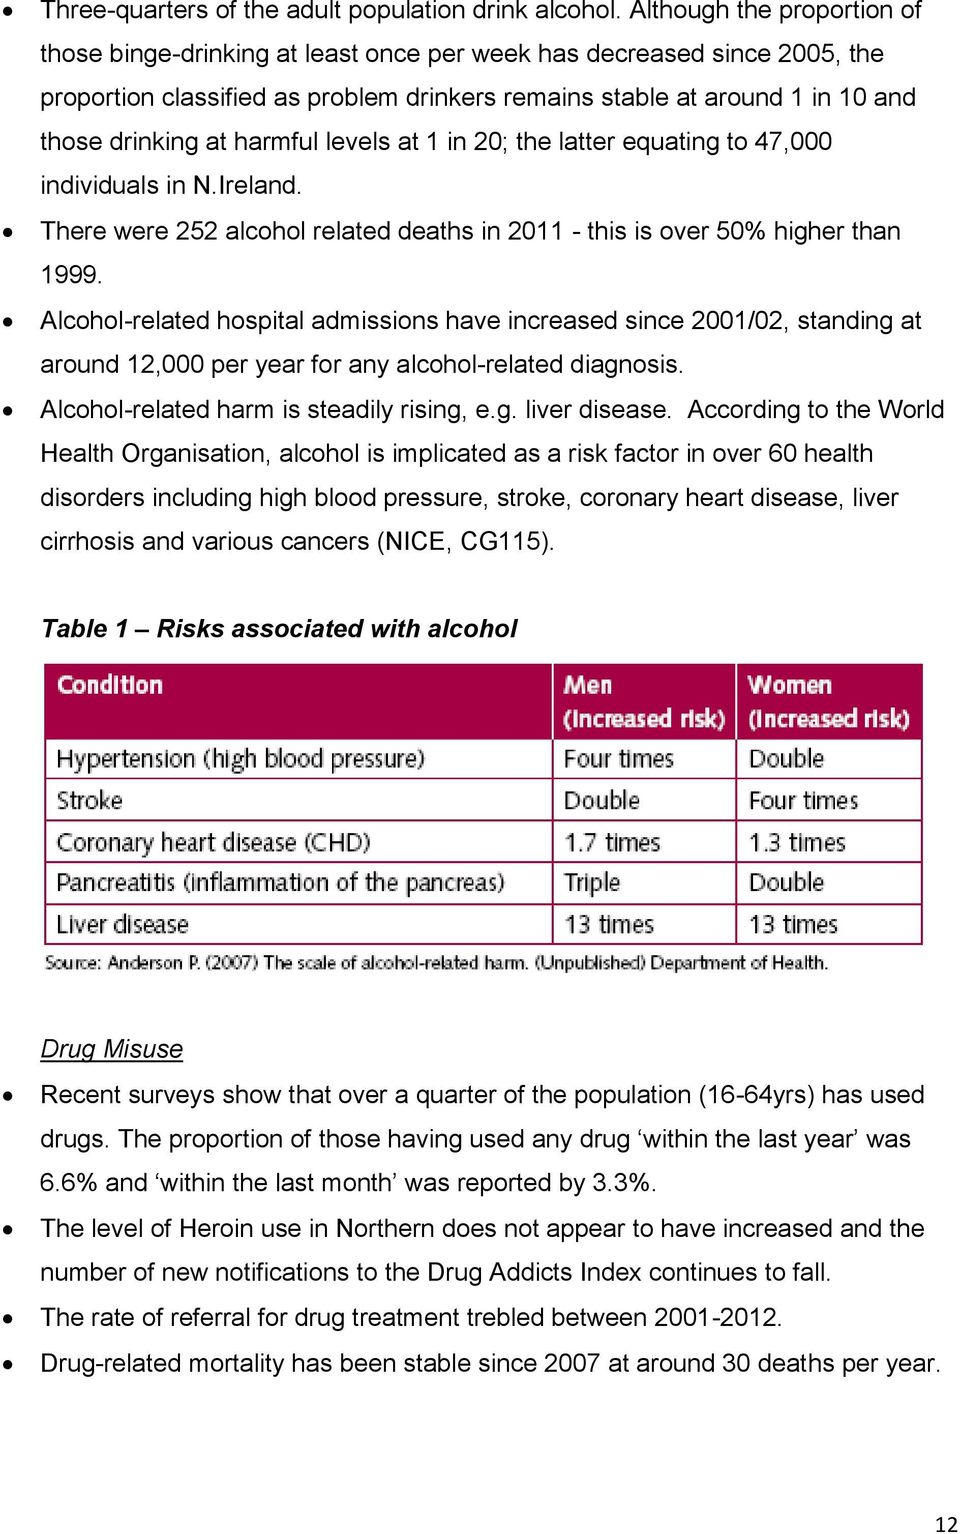 harmful levels at 1 in 20; the latter equating to 47,000 individuals in N.Ireland. There were 252 alcohol related deaths in 2011 - this is over 50% higher than 1999.